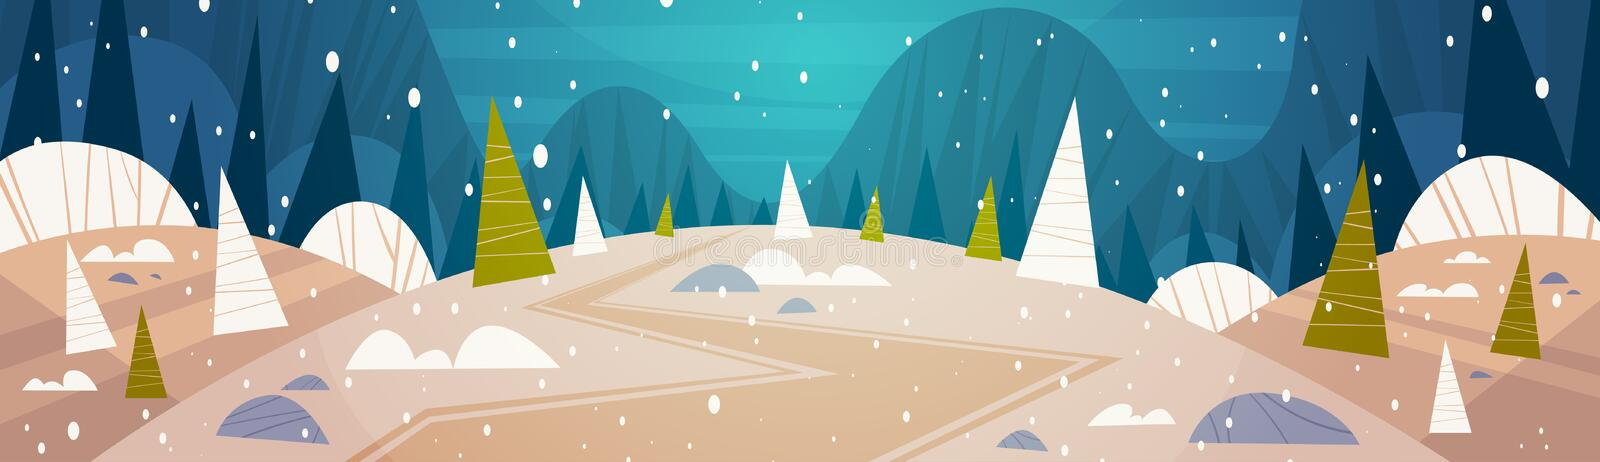 Winter Forest Landscape Moon Shining Over Snowy Trees, Merry Christmas And Happy New Year Banner Holidays Concept vector illustration